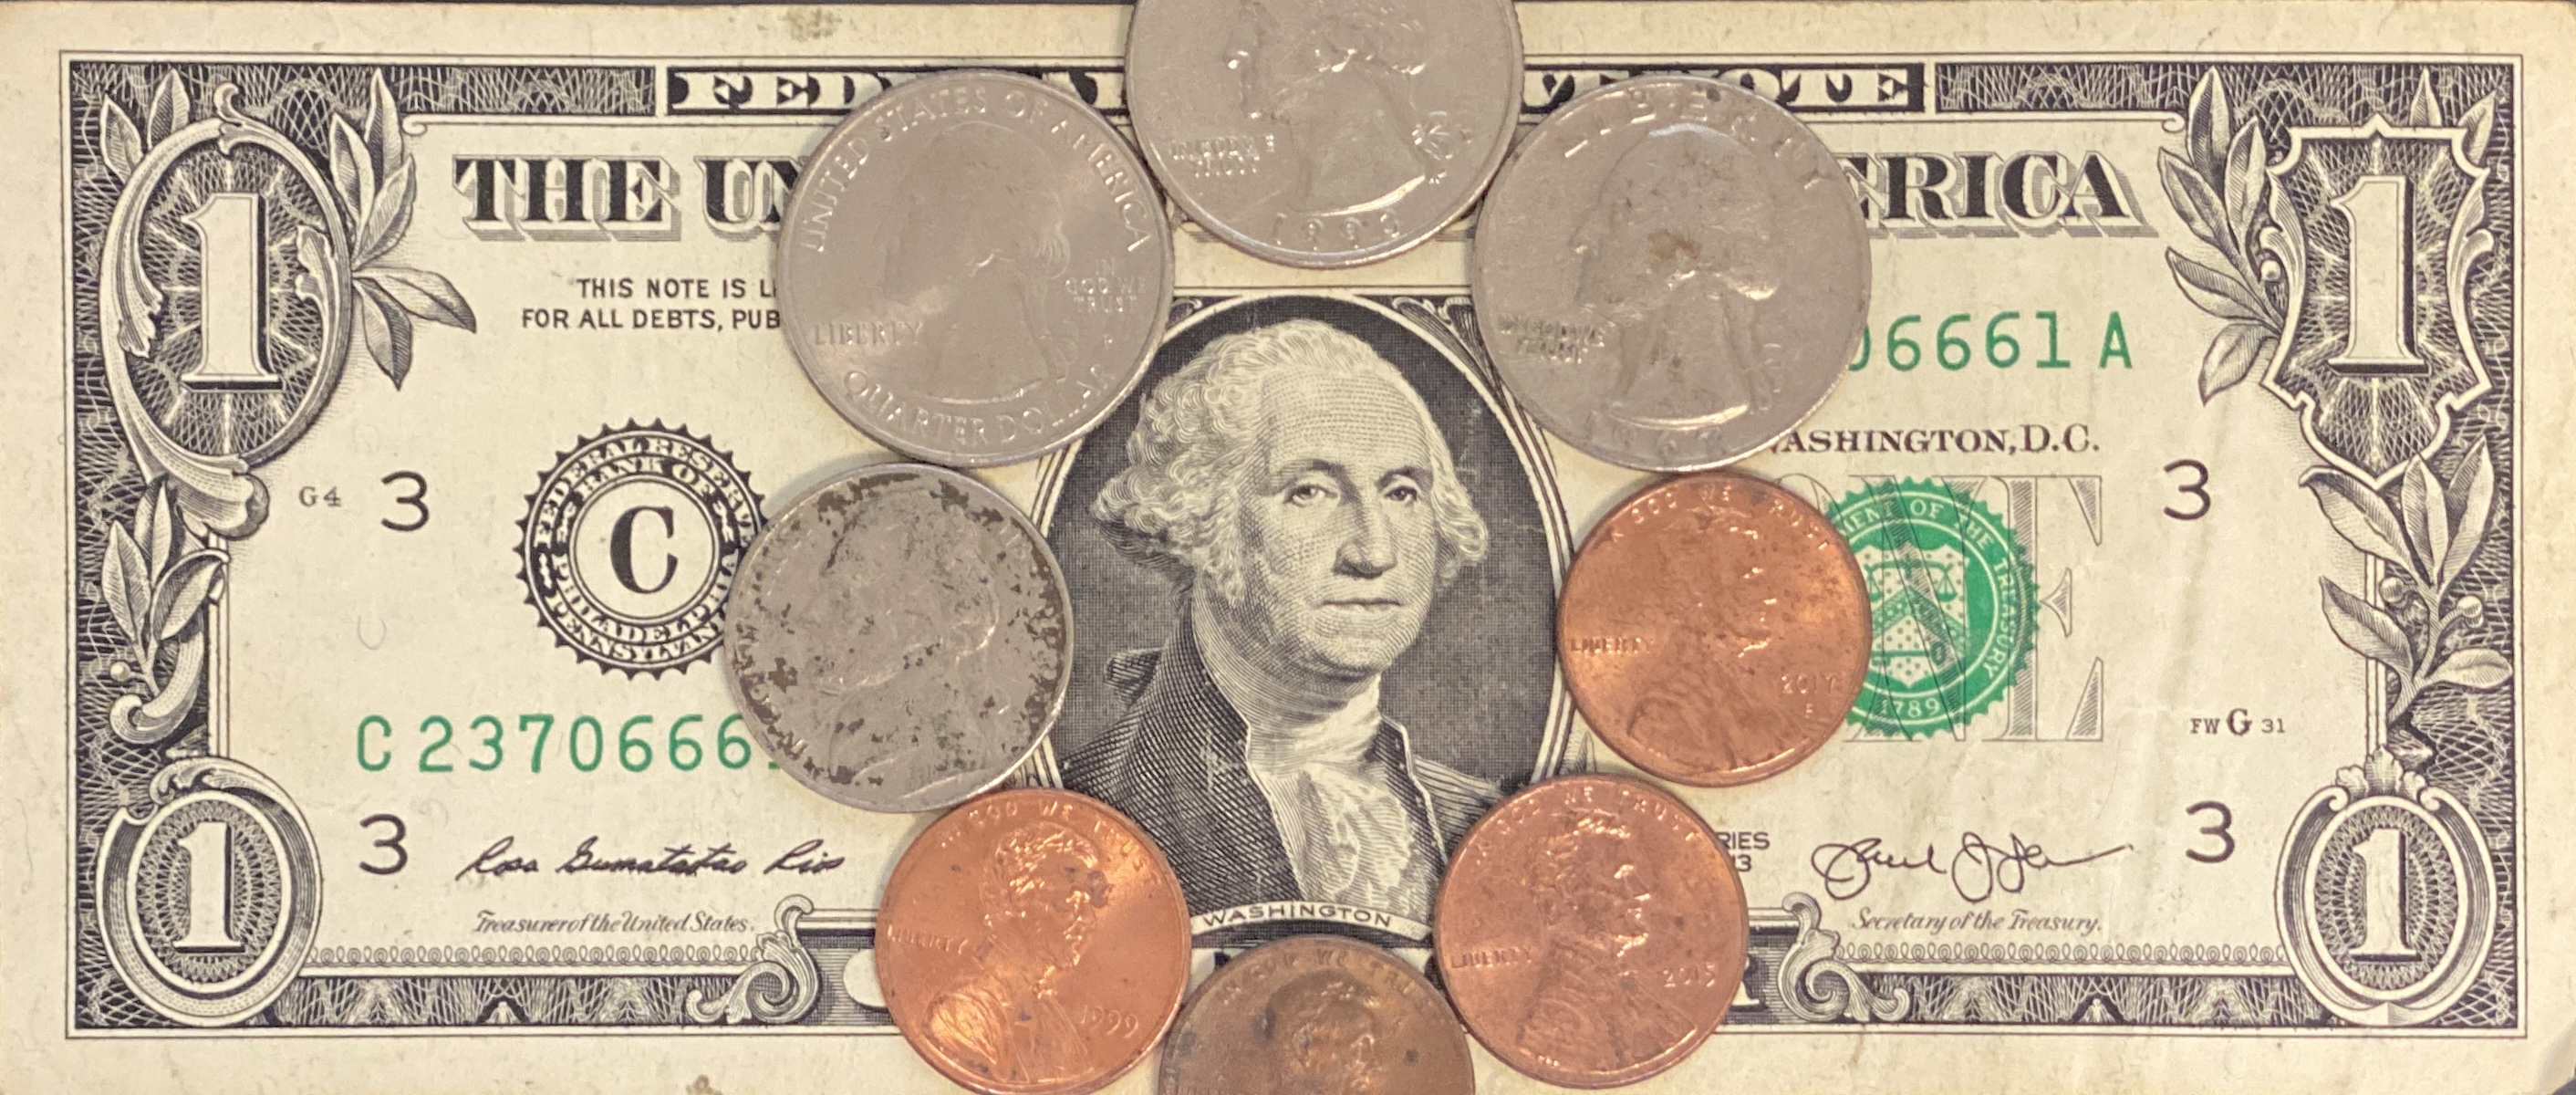 According to a Pew Research Center study, women, on average, are paid approximately 84 cents for every dollar men earn.